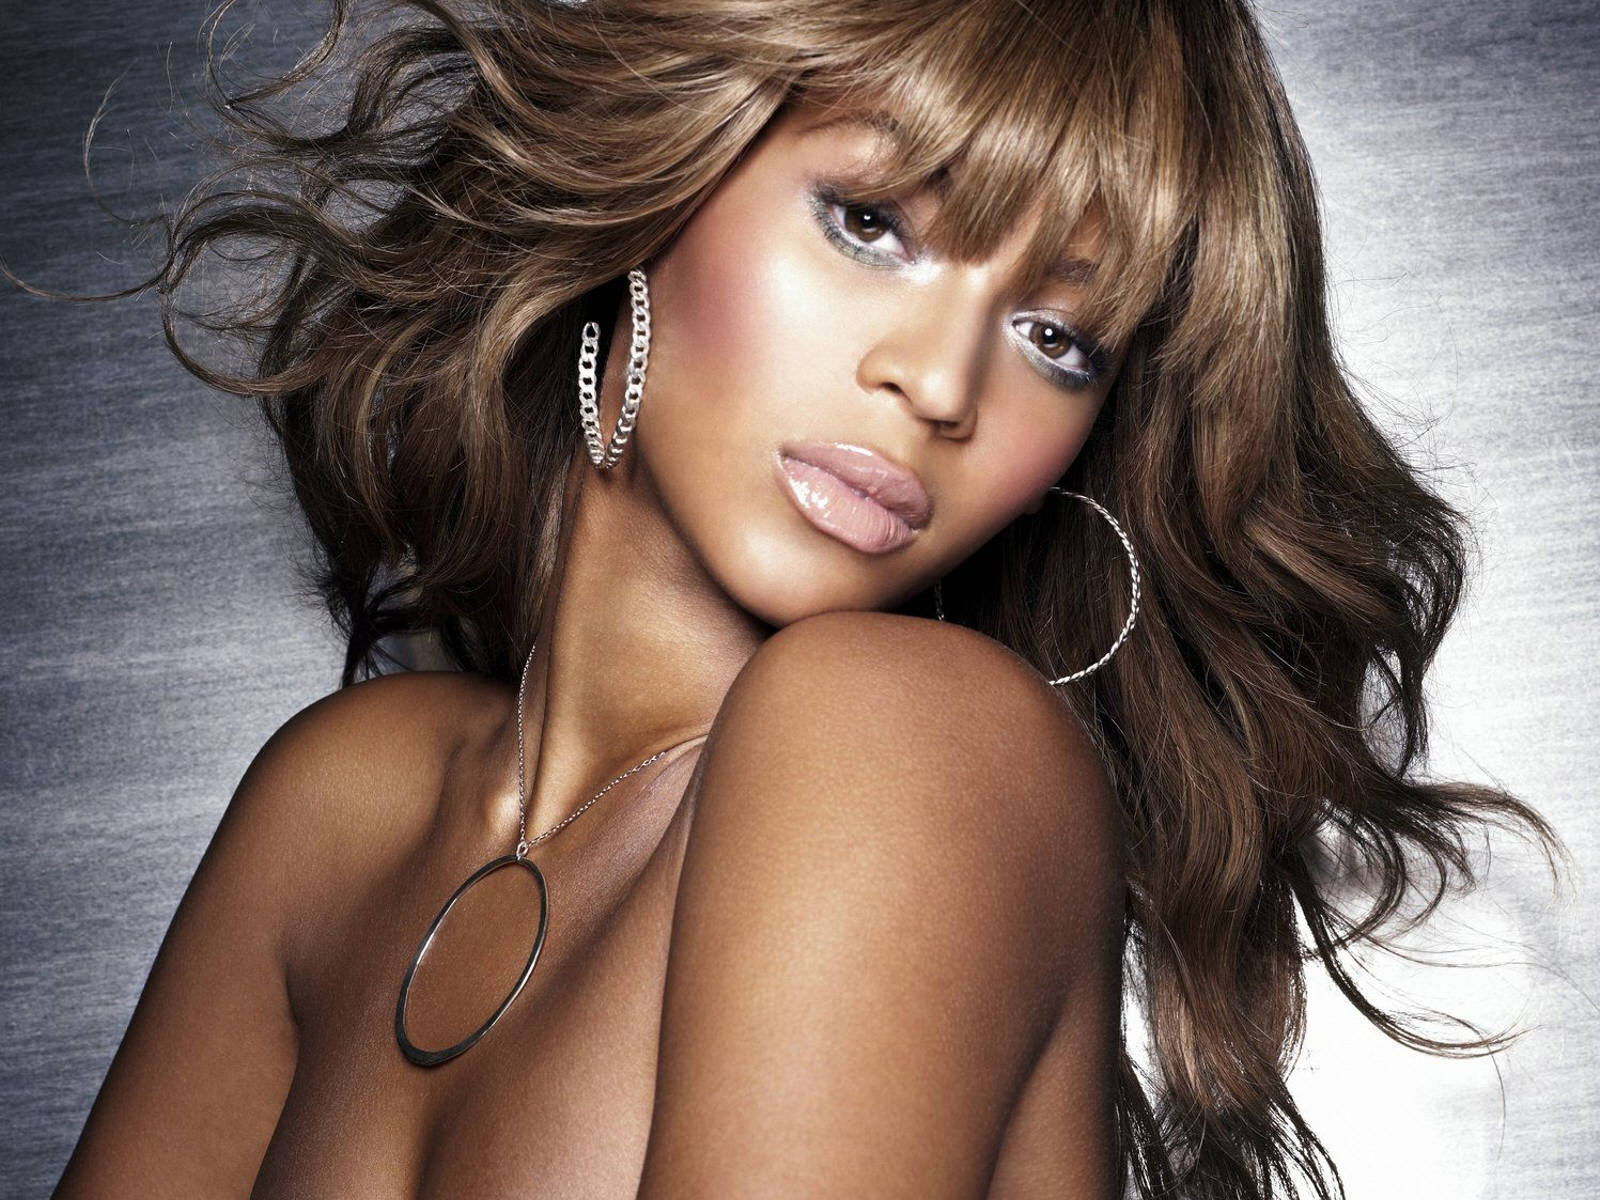 sexy images of beyonce nude